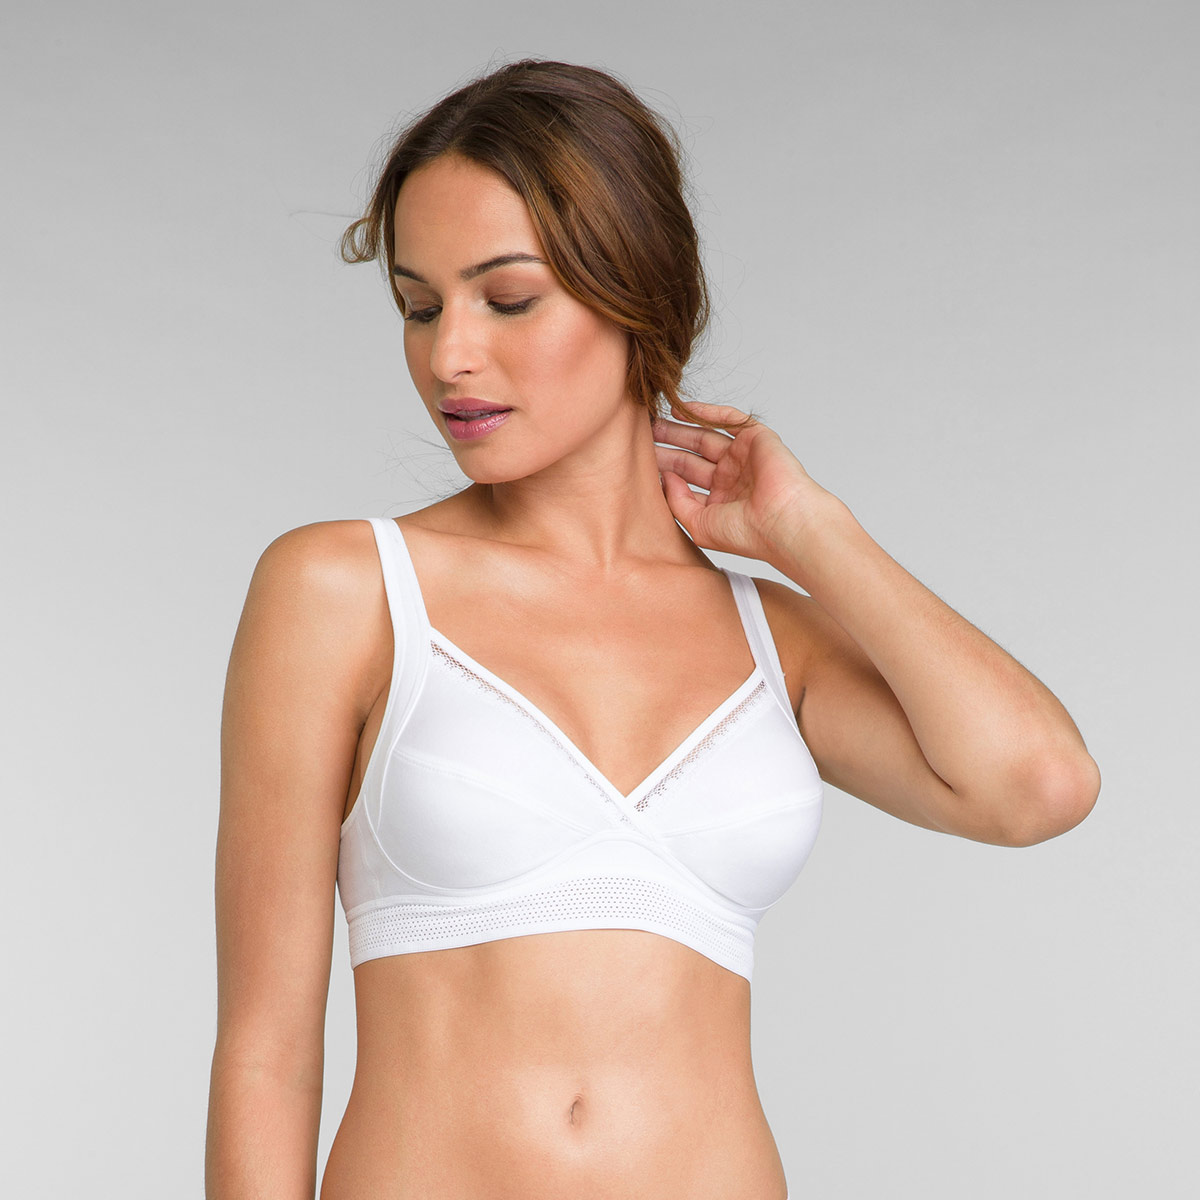 Reggiseno senza ferretto bianco Feel Good Support, , PLAYTEX